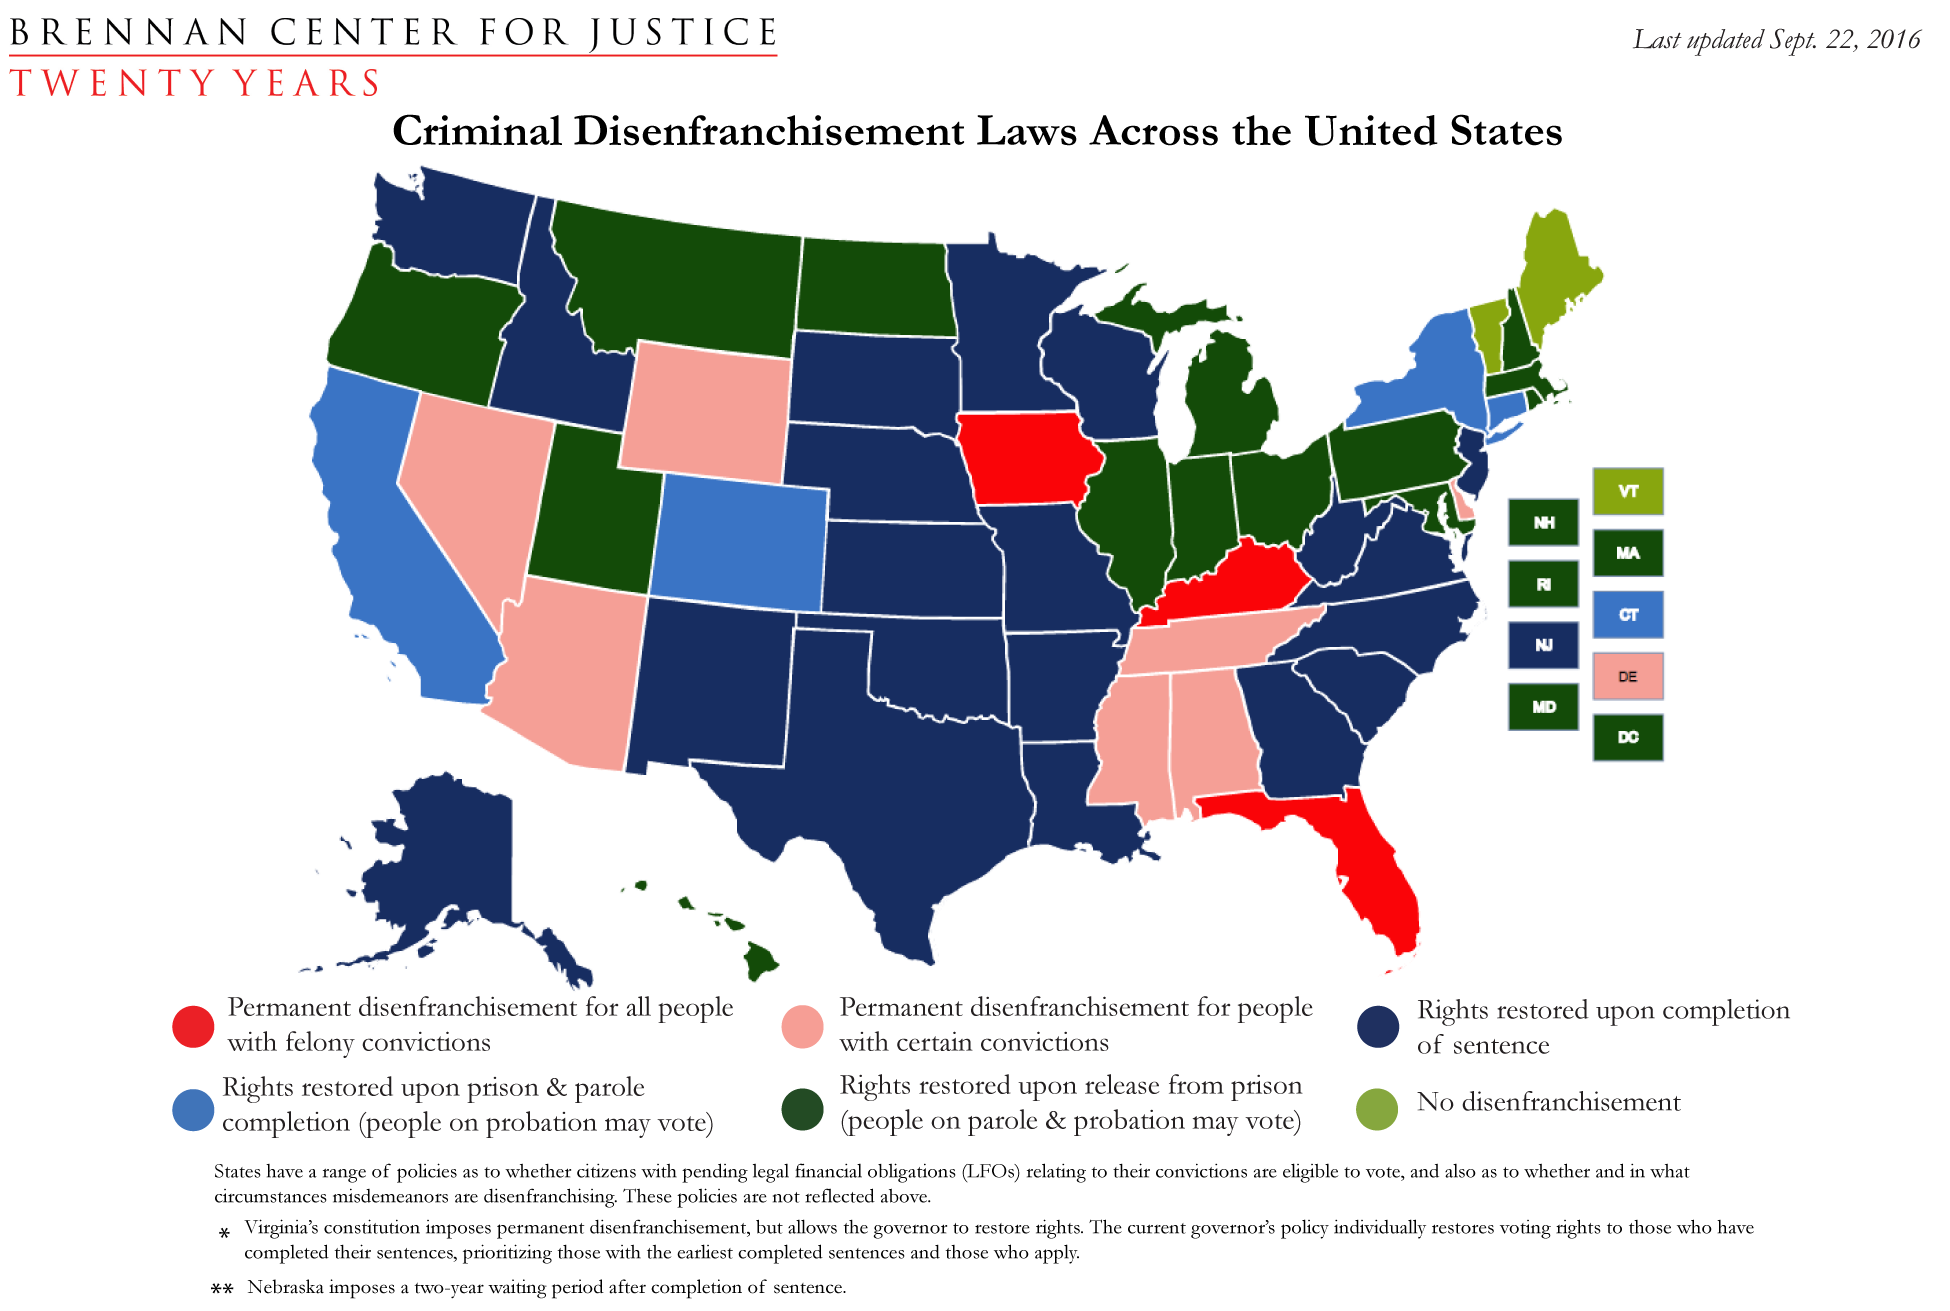 Click On Any State For A Summary Of Its Current Laws On Criminal Disenfranchit Click Here For A Pdf Version Of This Map